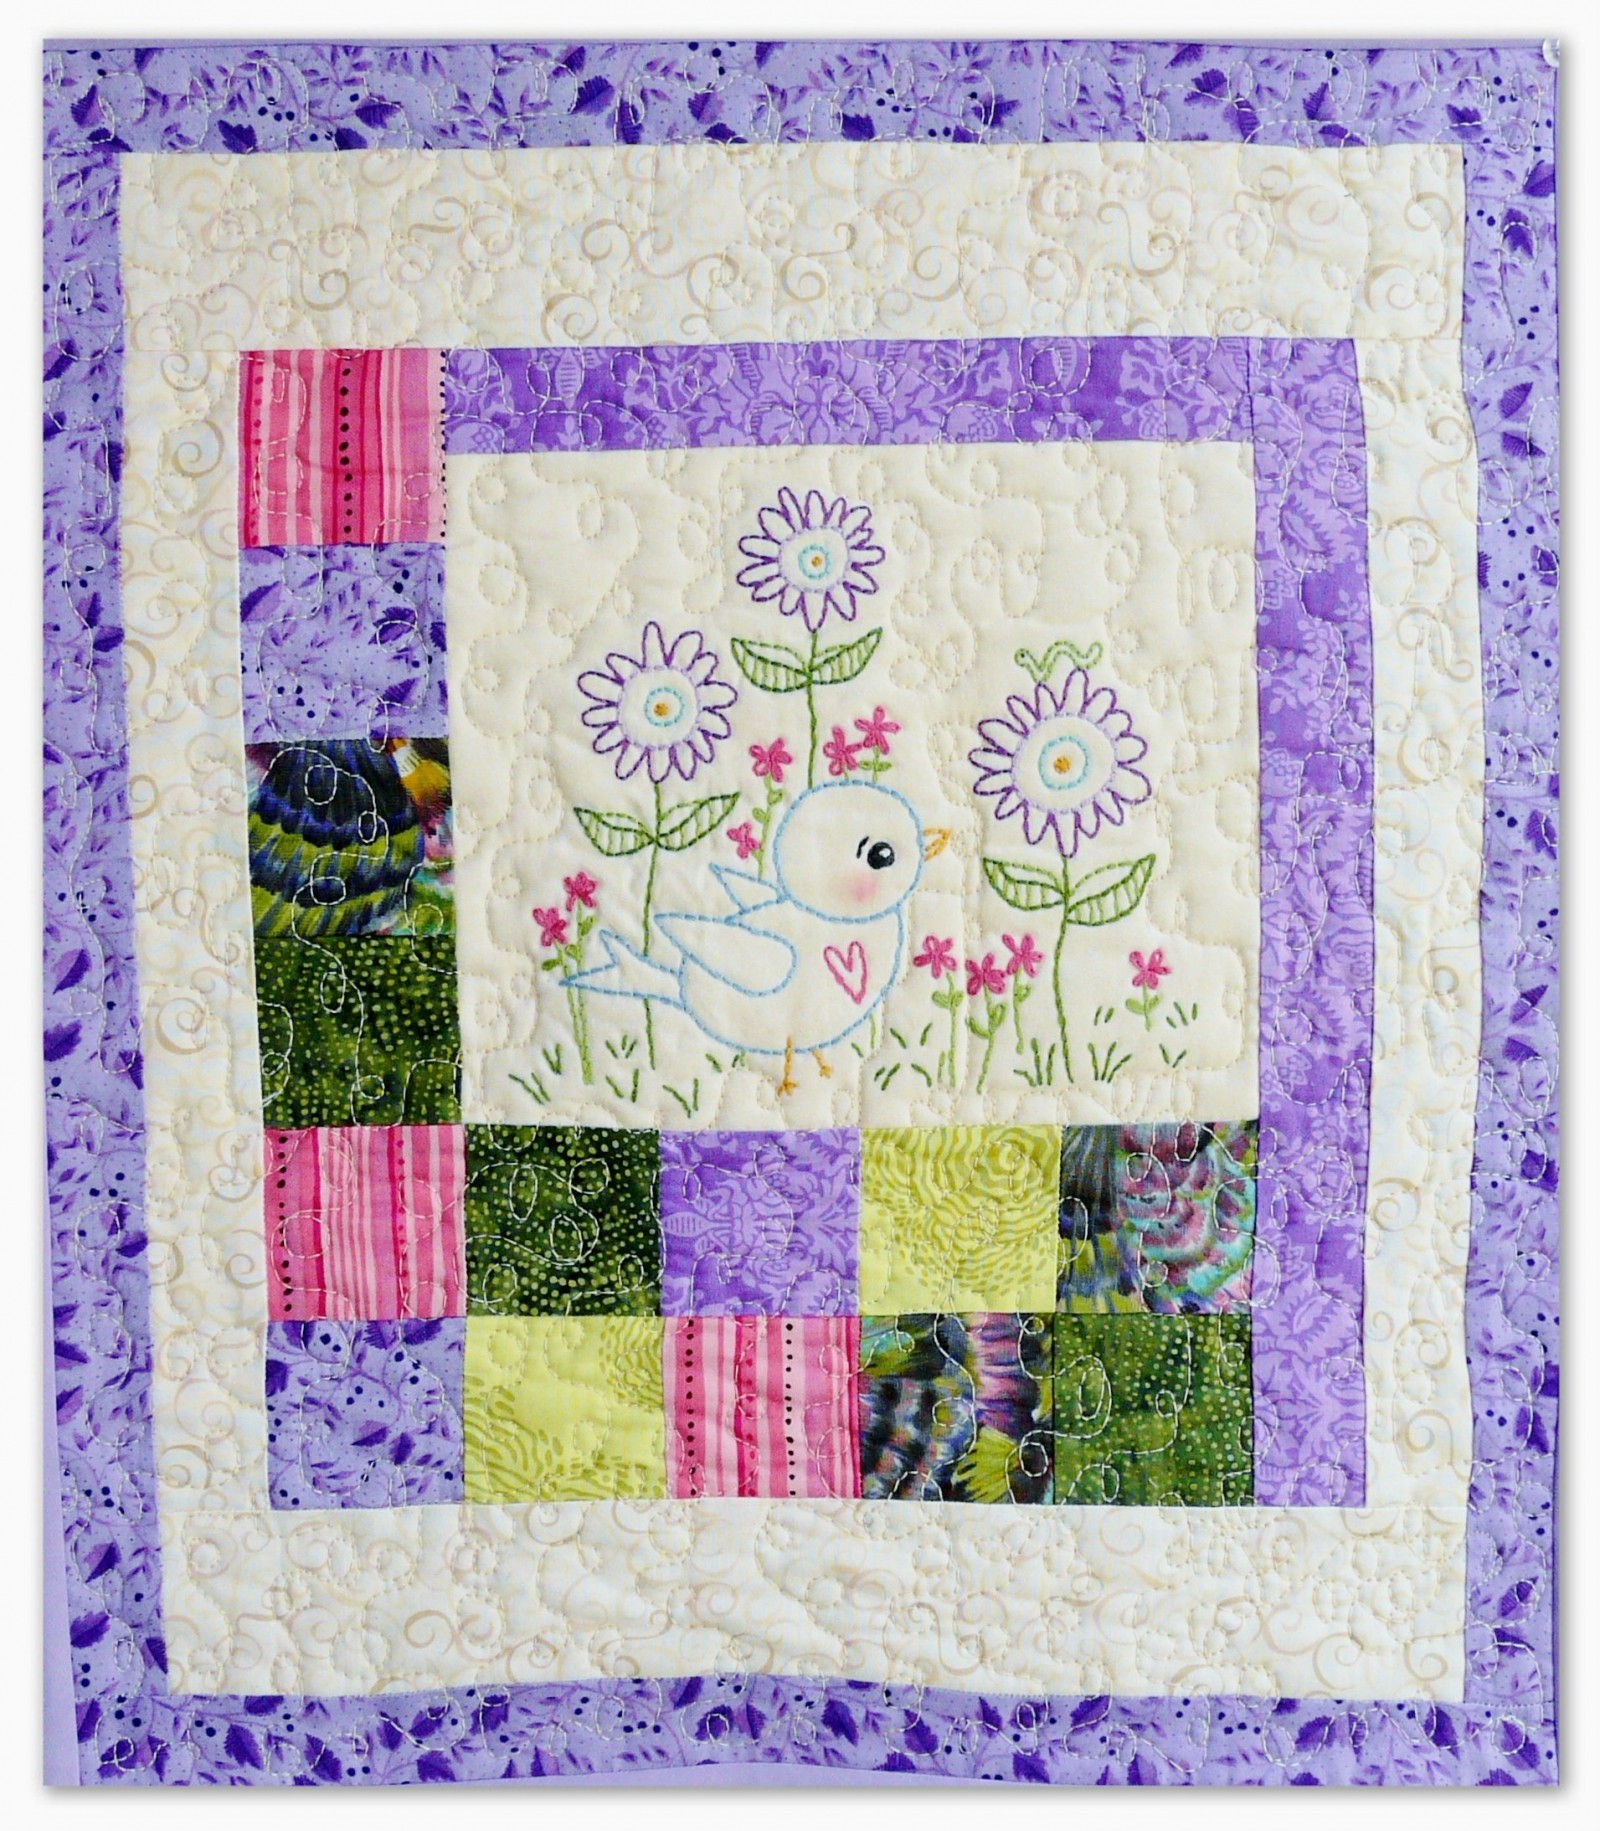 Blue Bird of happiness embroidery quilt pattern